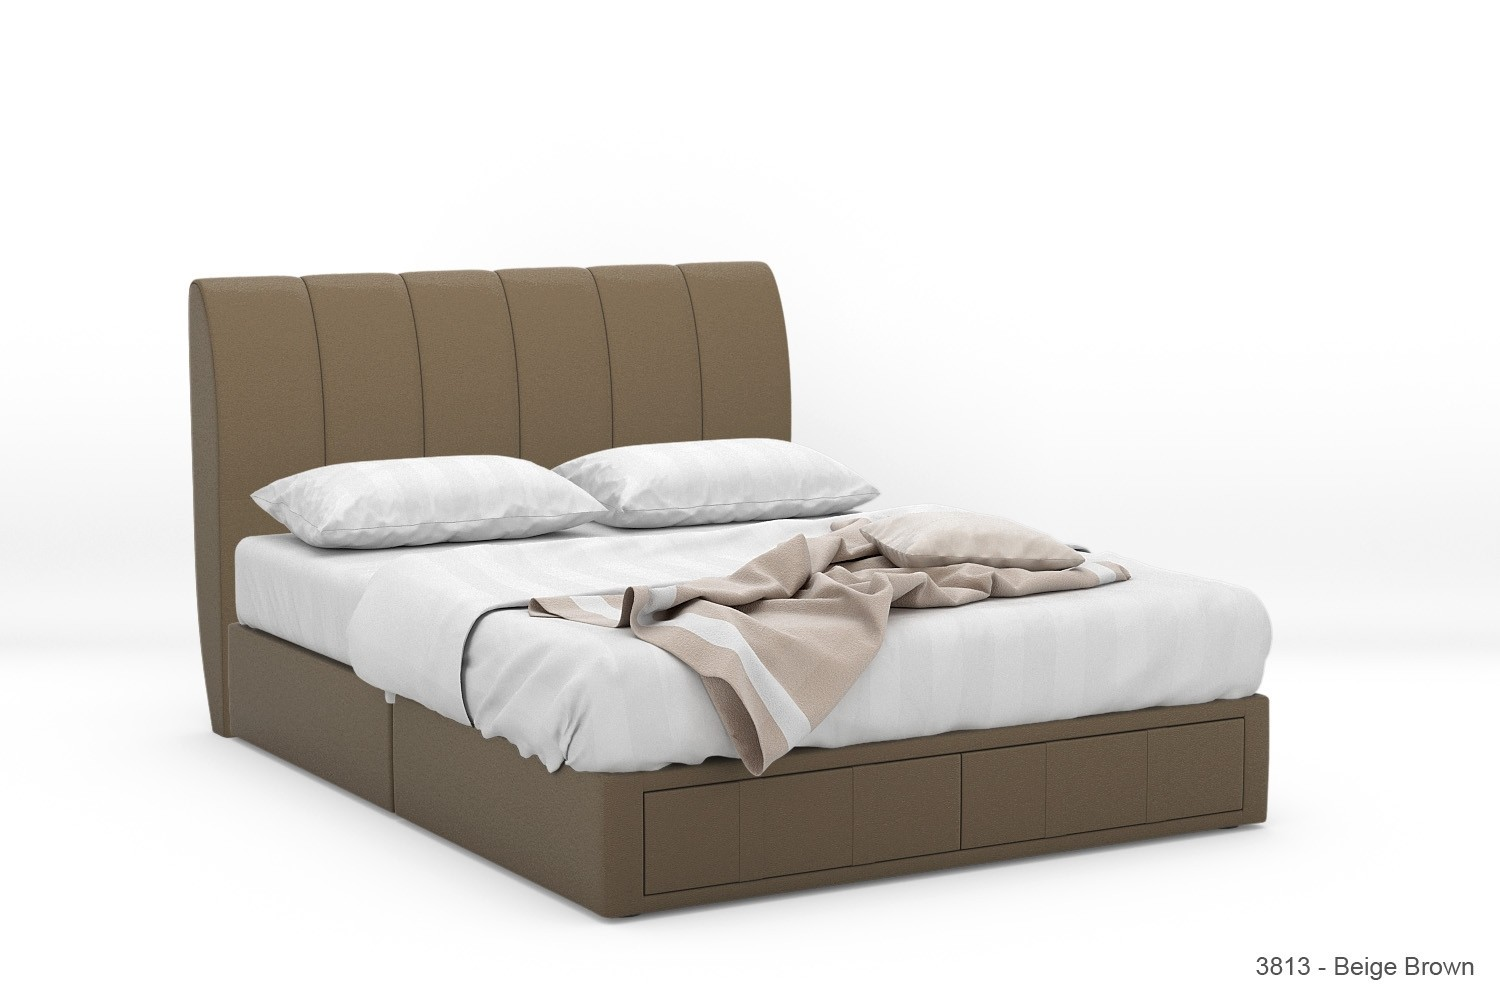 1 Stock Offer: Zimtax Faux Leather Drawer Bed Frame (Queen, Beige ...